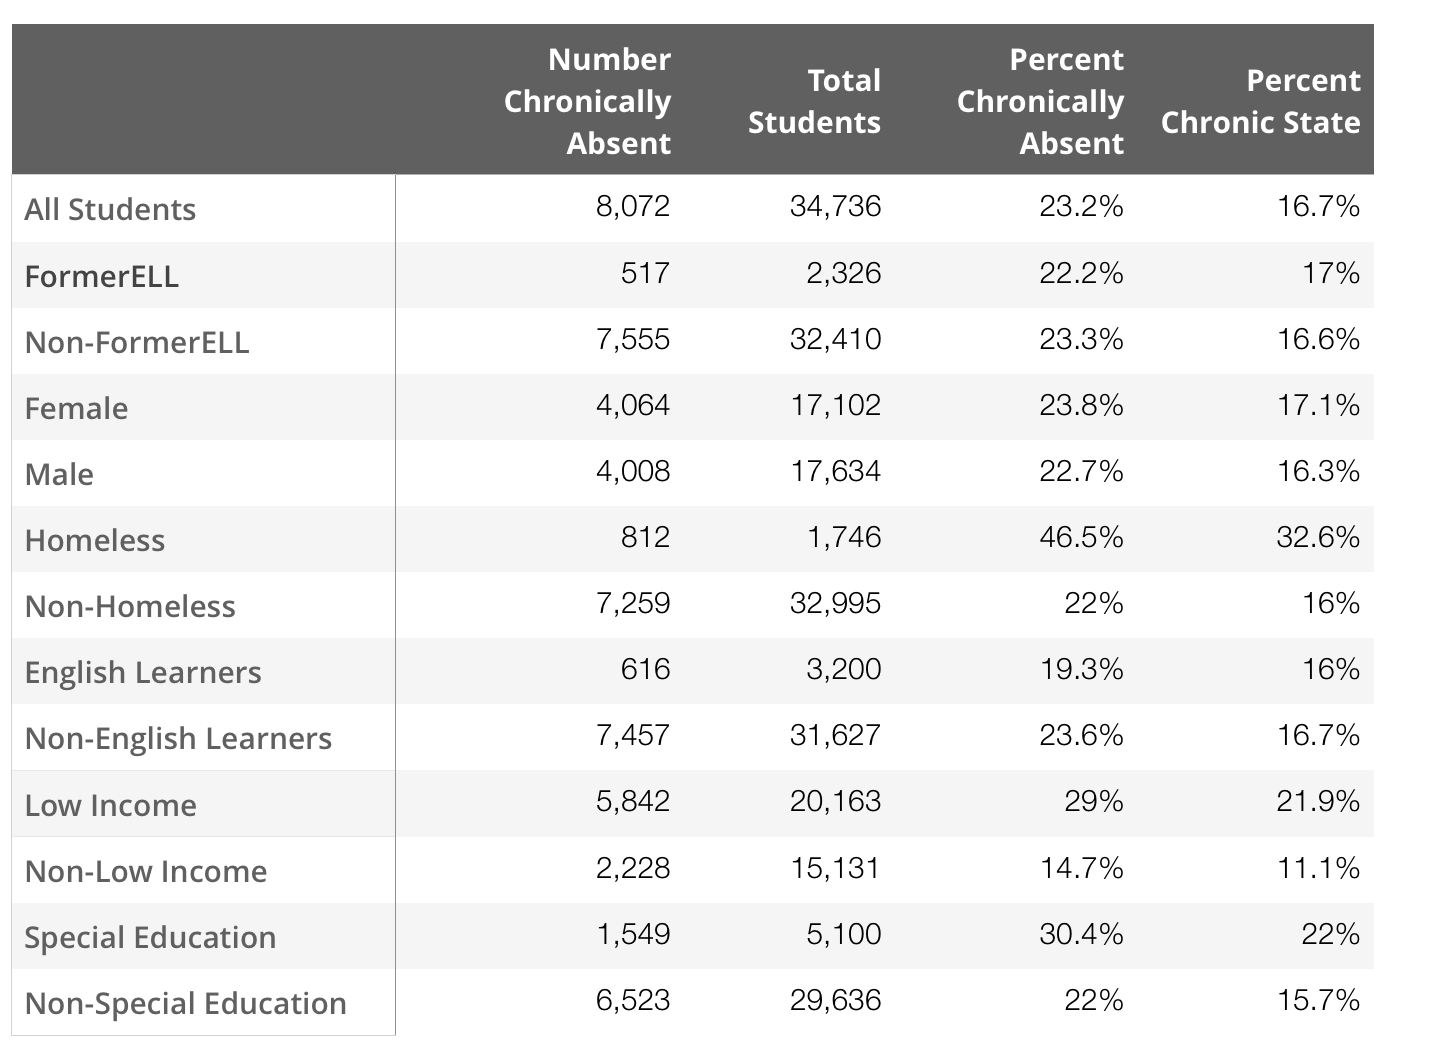 2015-16 Chronic Absenteeism Rates for Tacoma as Compared to Statewide Averages